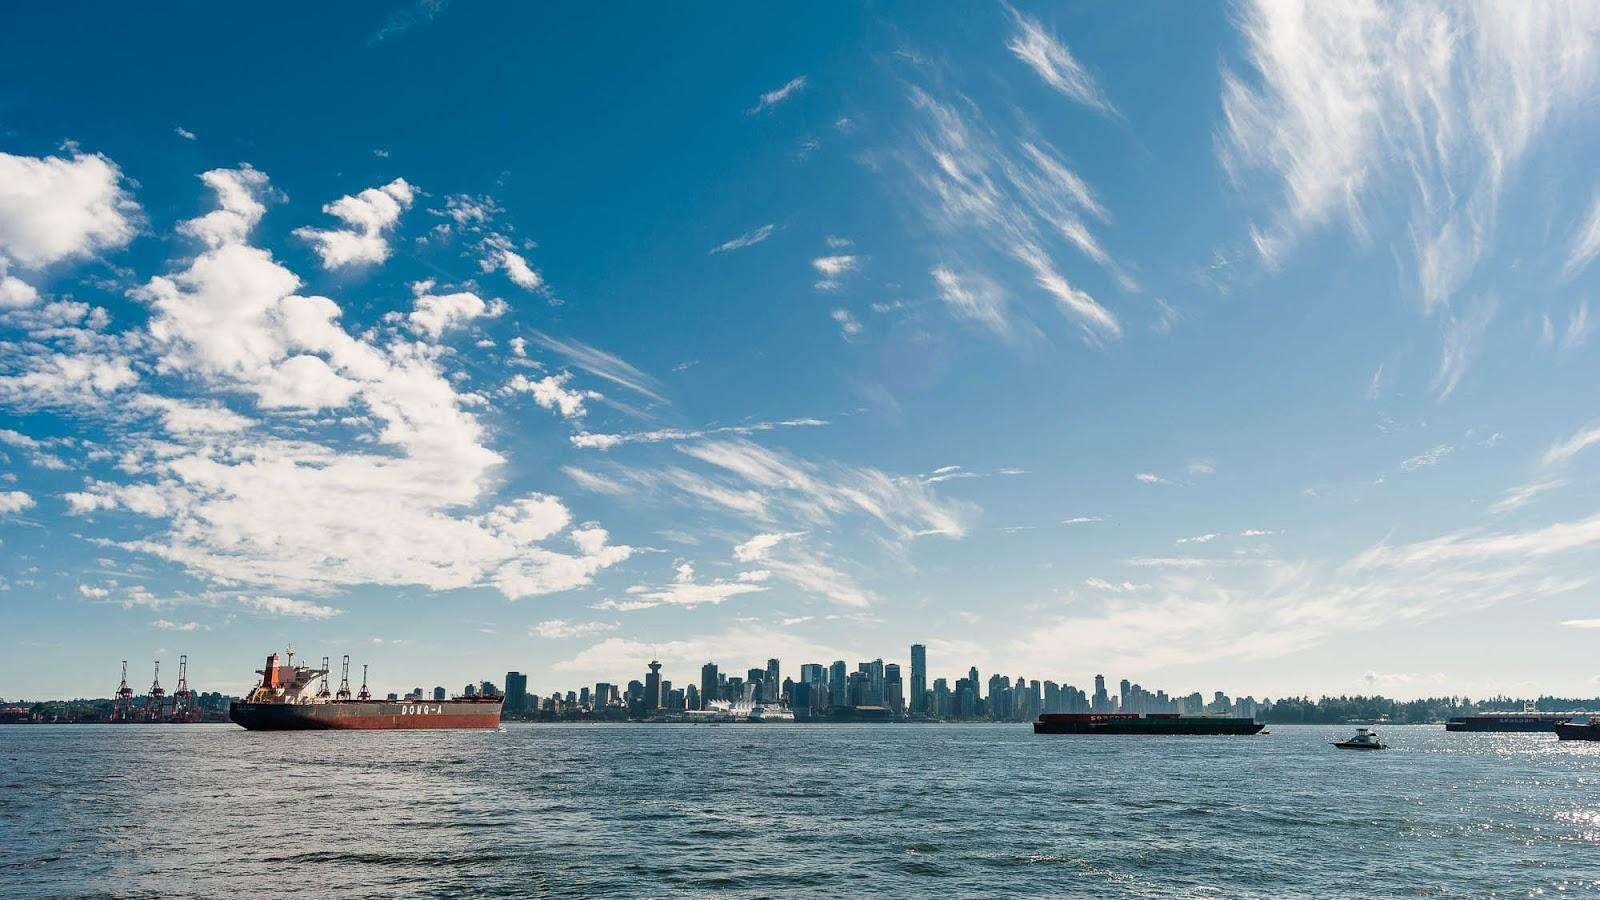 Photograph Vancouver Skyline from North Van by Frank Neulichedl on 500px